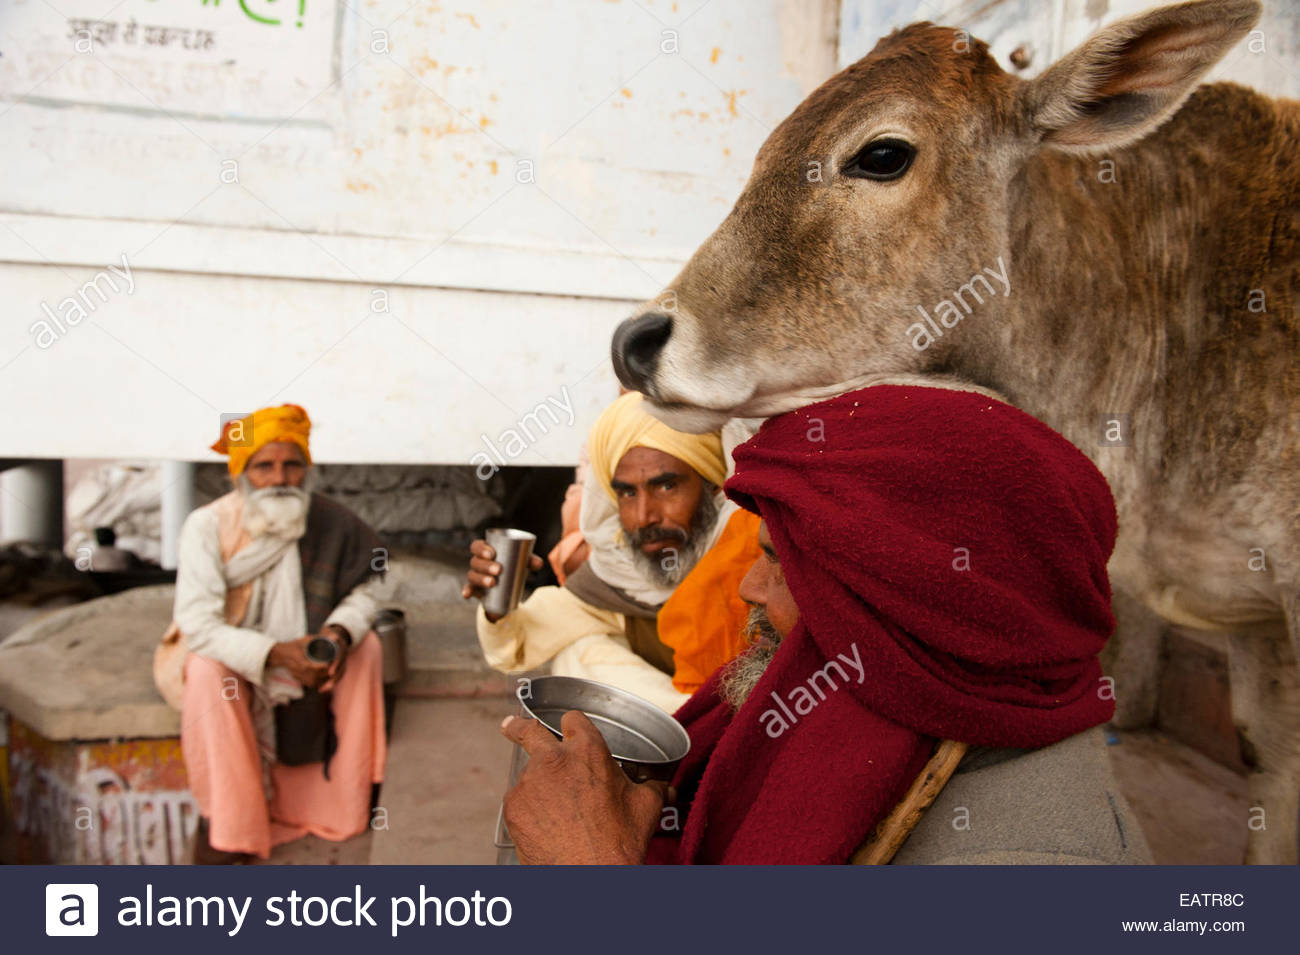 A cow completes an afternoon tea scene, where cattle are revered by Hindus. - Stock Image